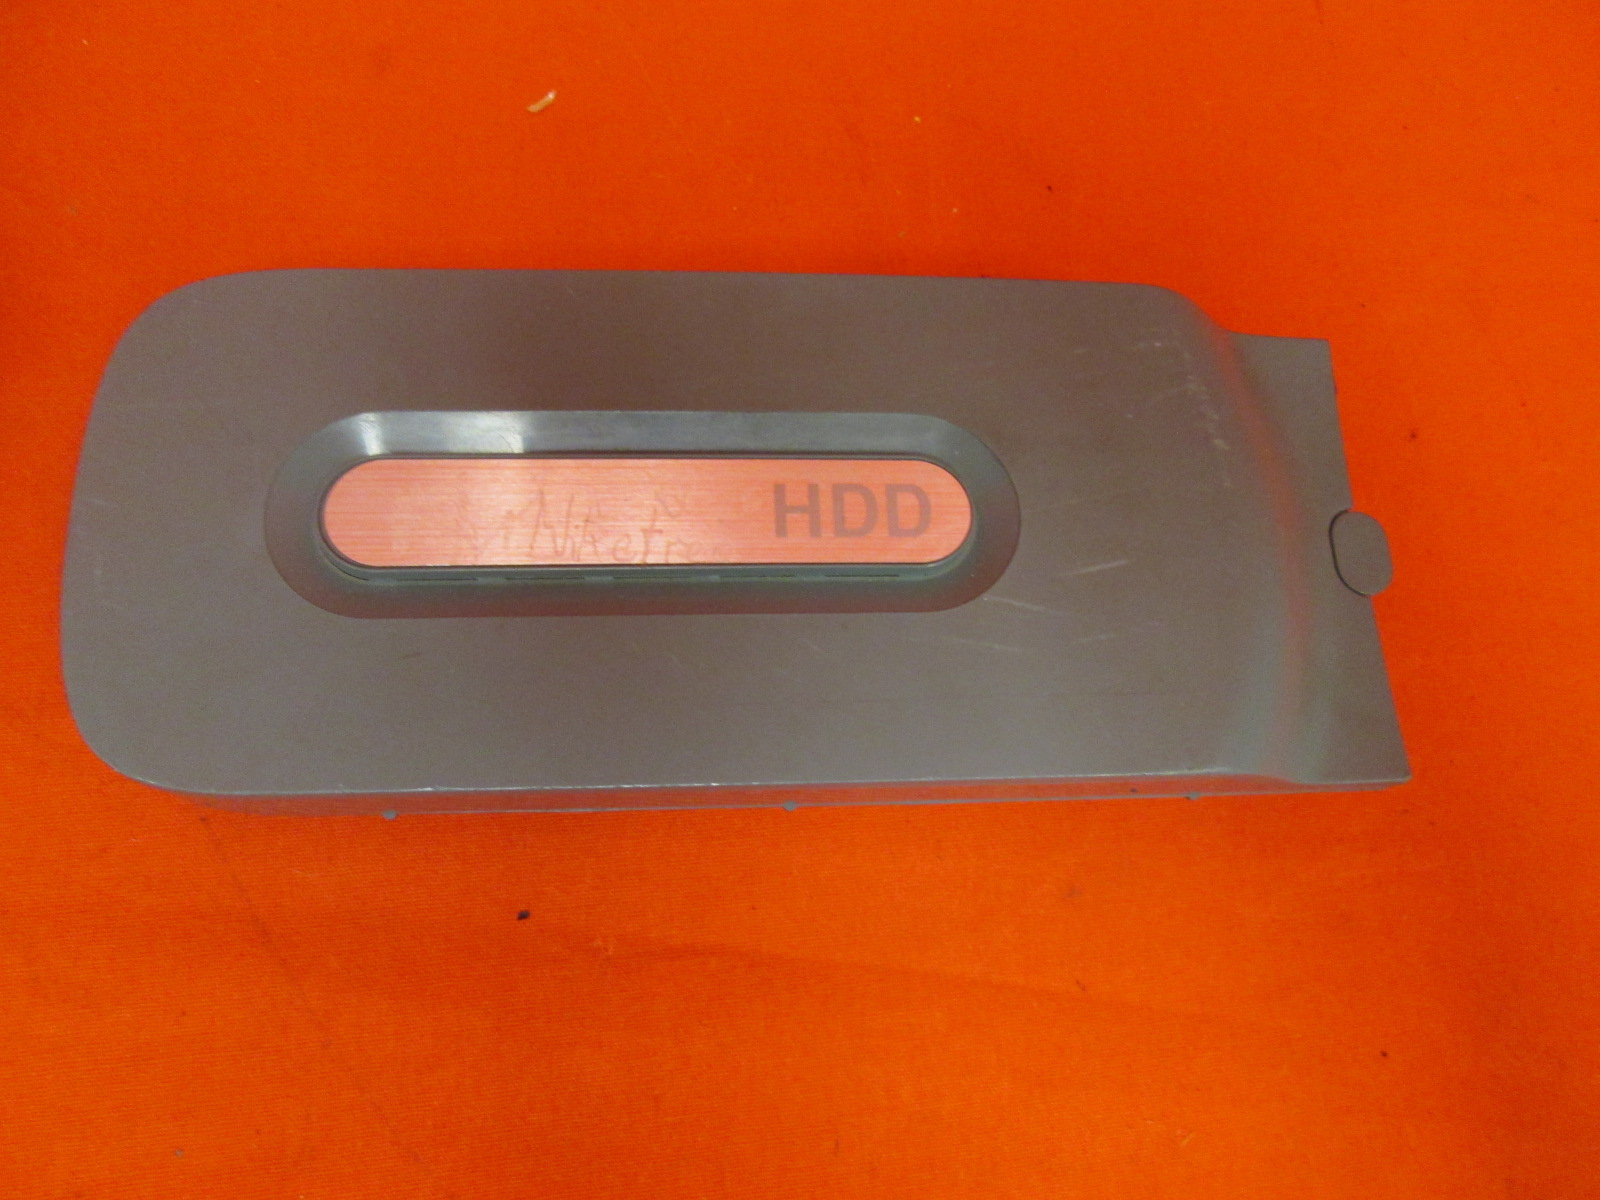 20GB Hard Disk Drive Hdd For Xbox 360 Console